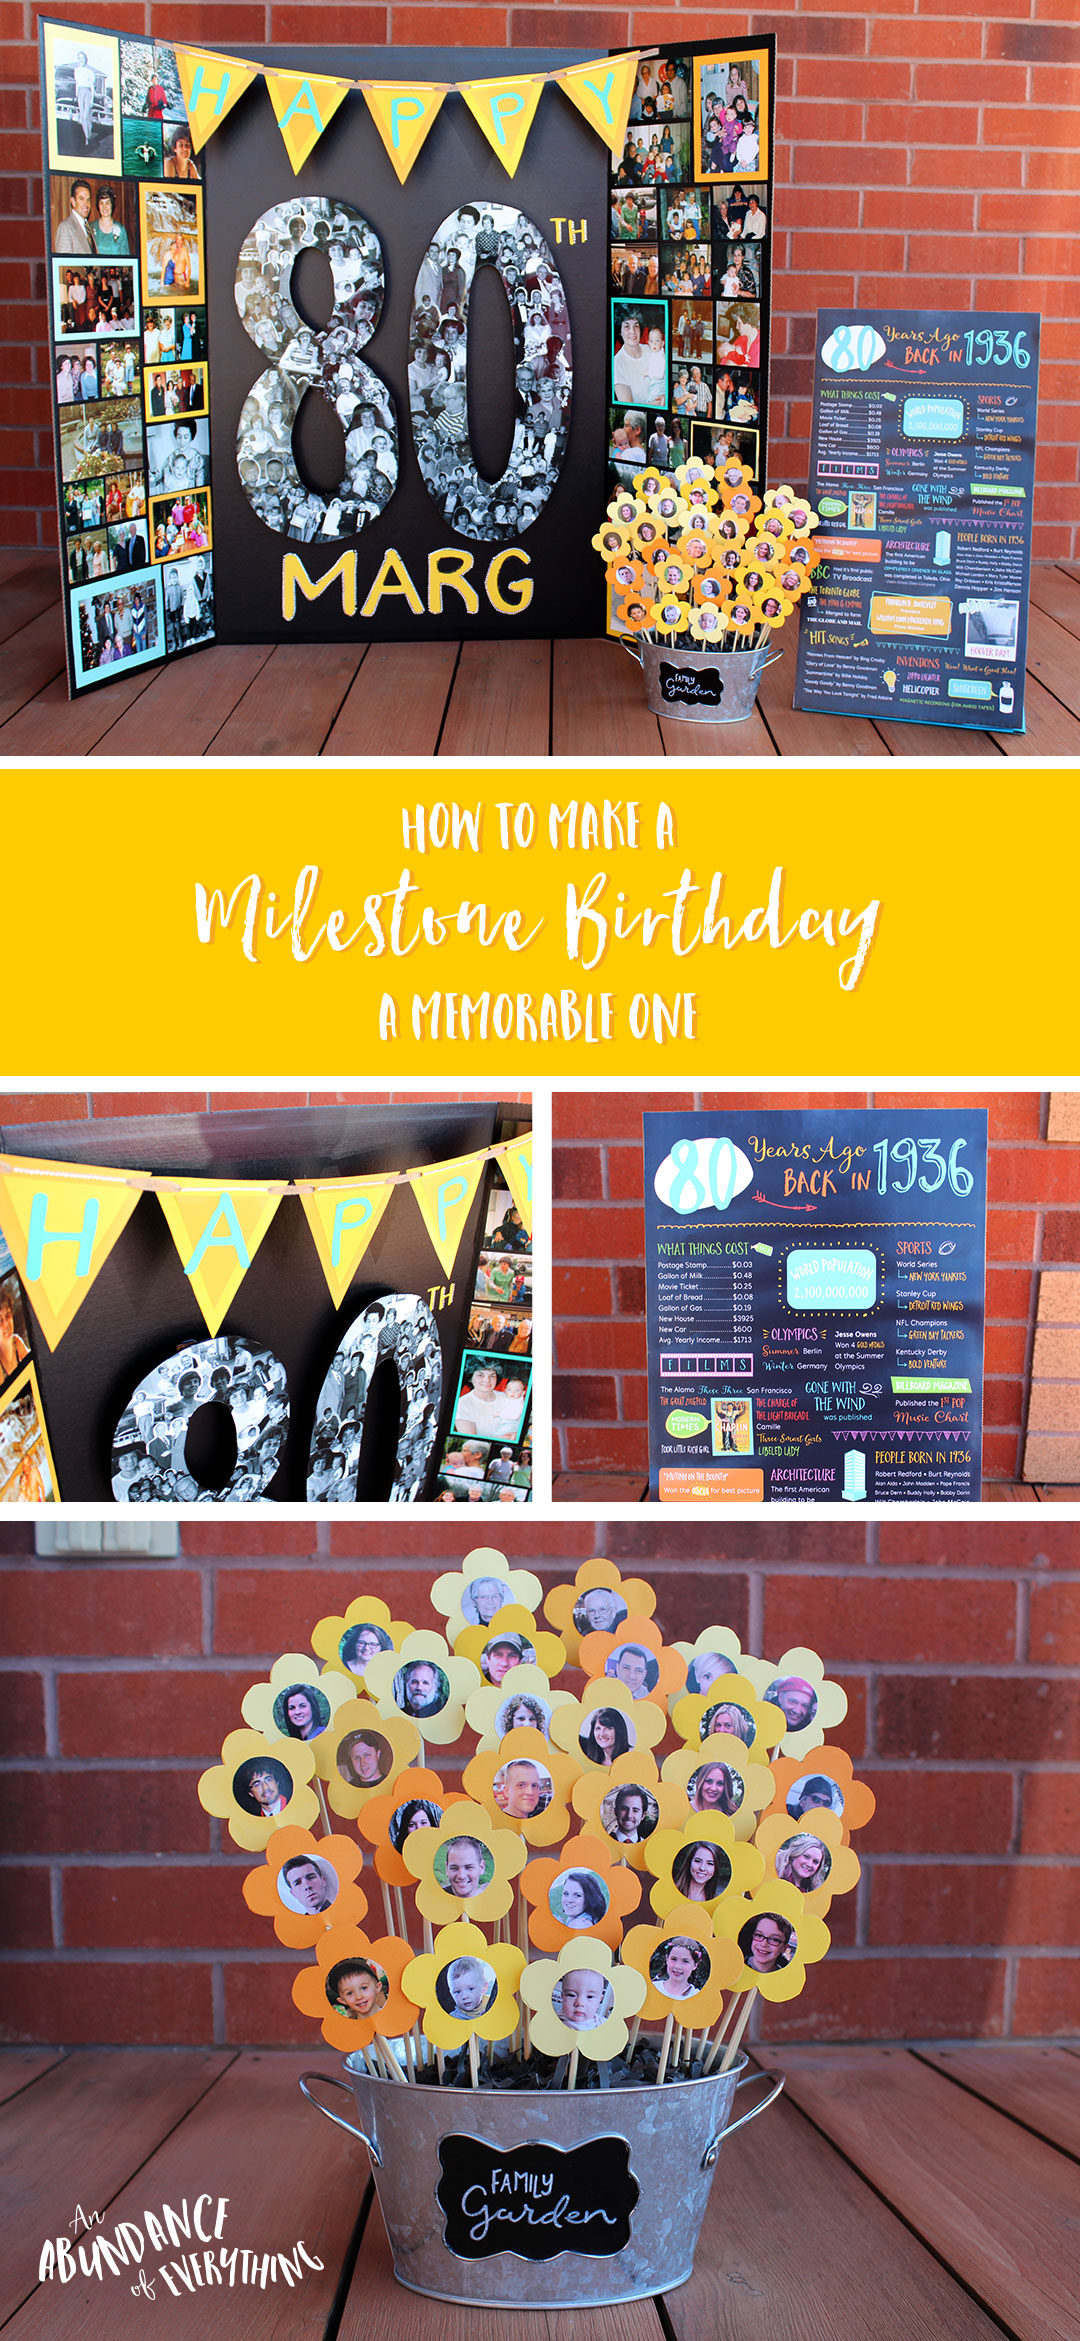 how to make a milestone birthday a memorable one